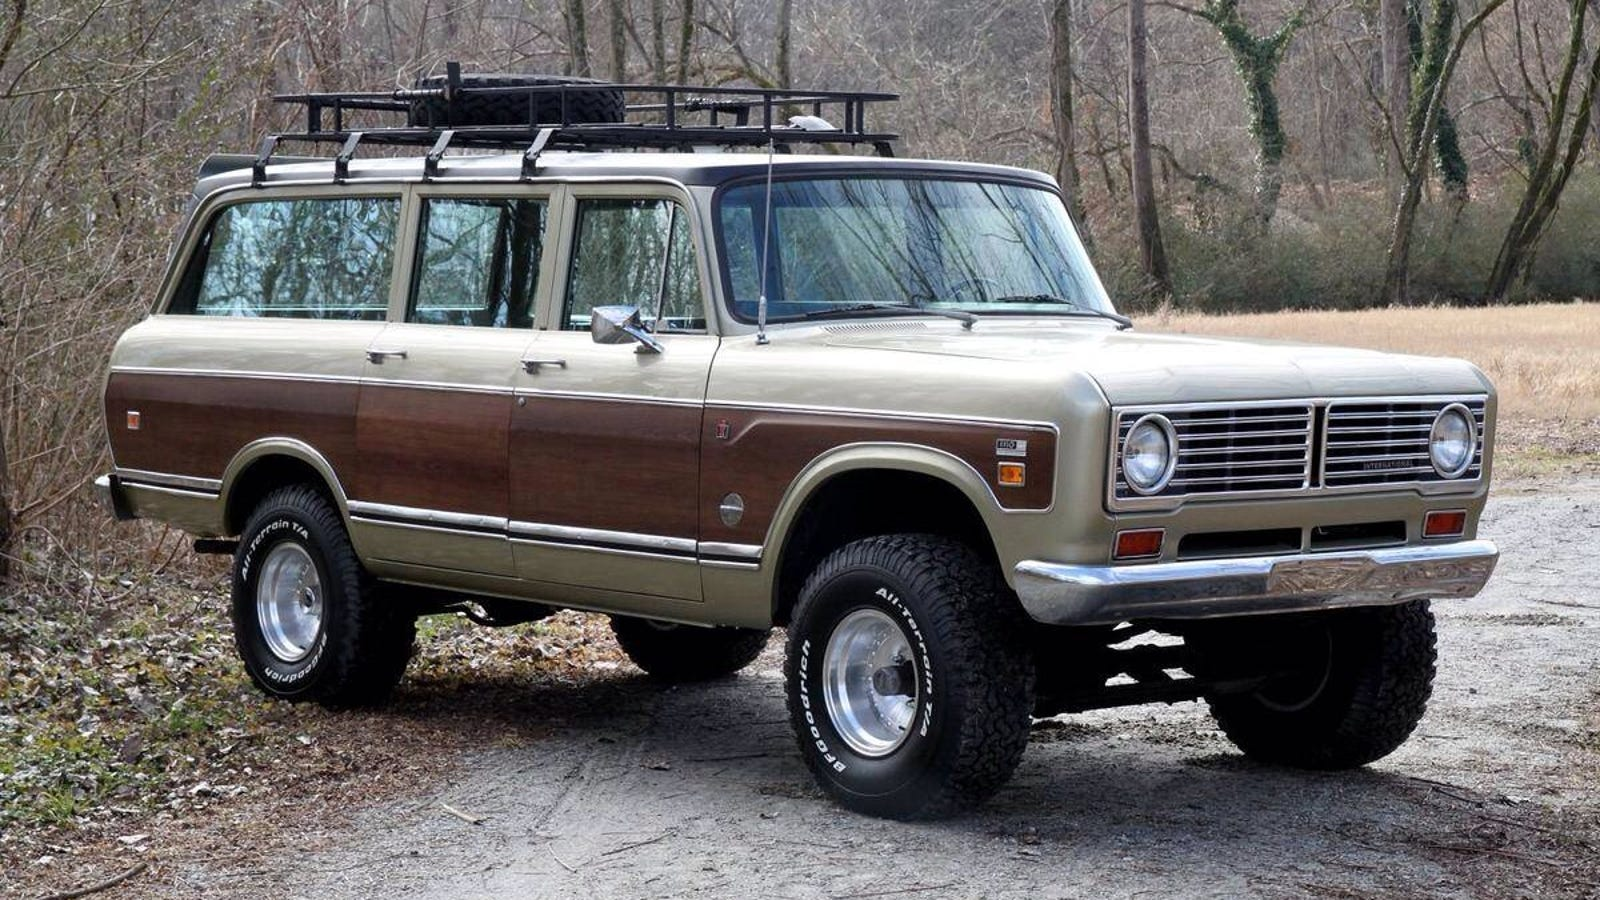 Below Average Cars 1973 International Harvester Travelall